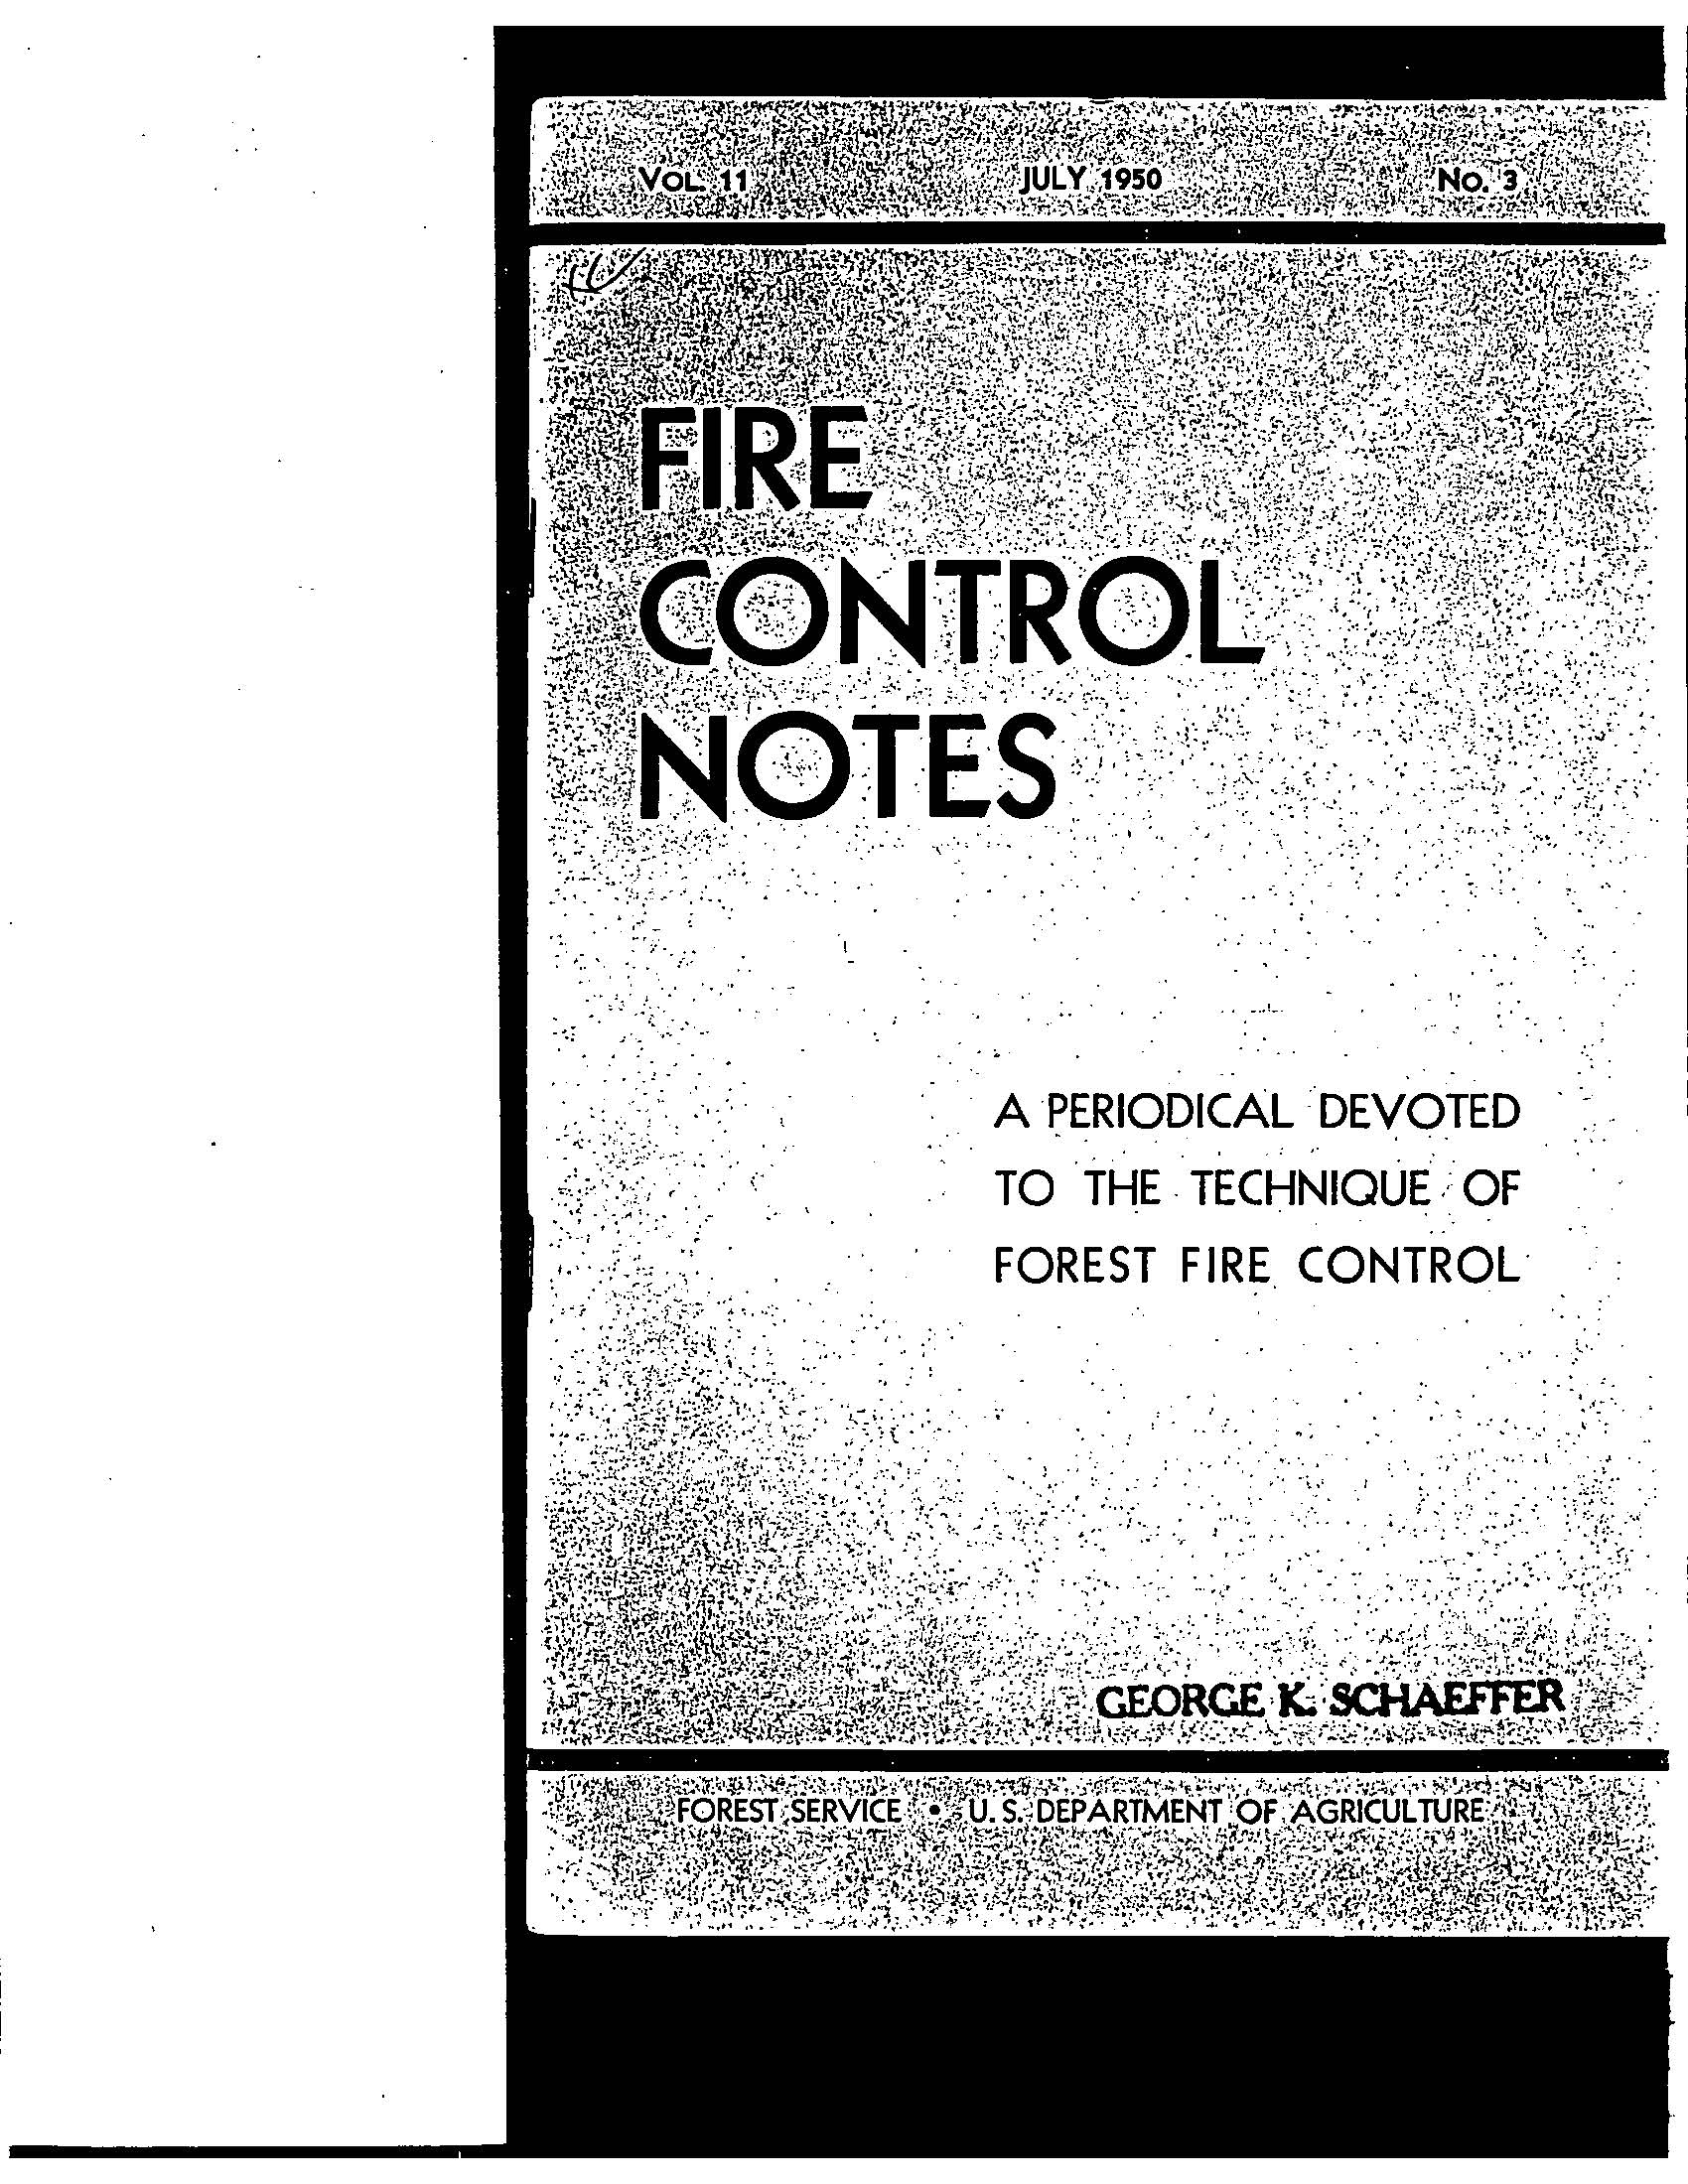 Cover of Fire Management Today Volume 11, Issue 03